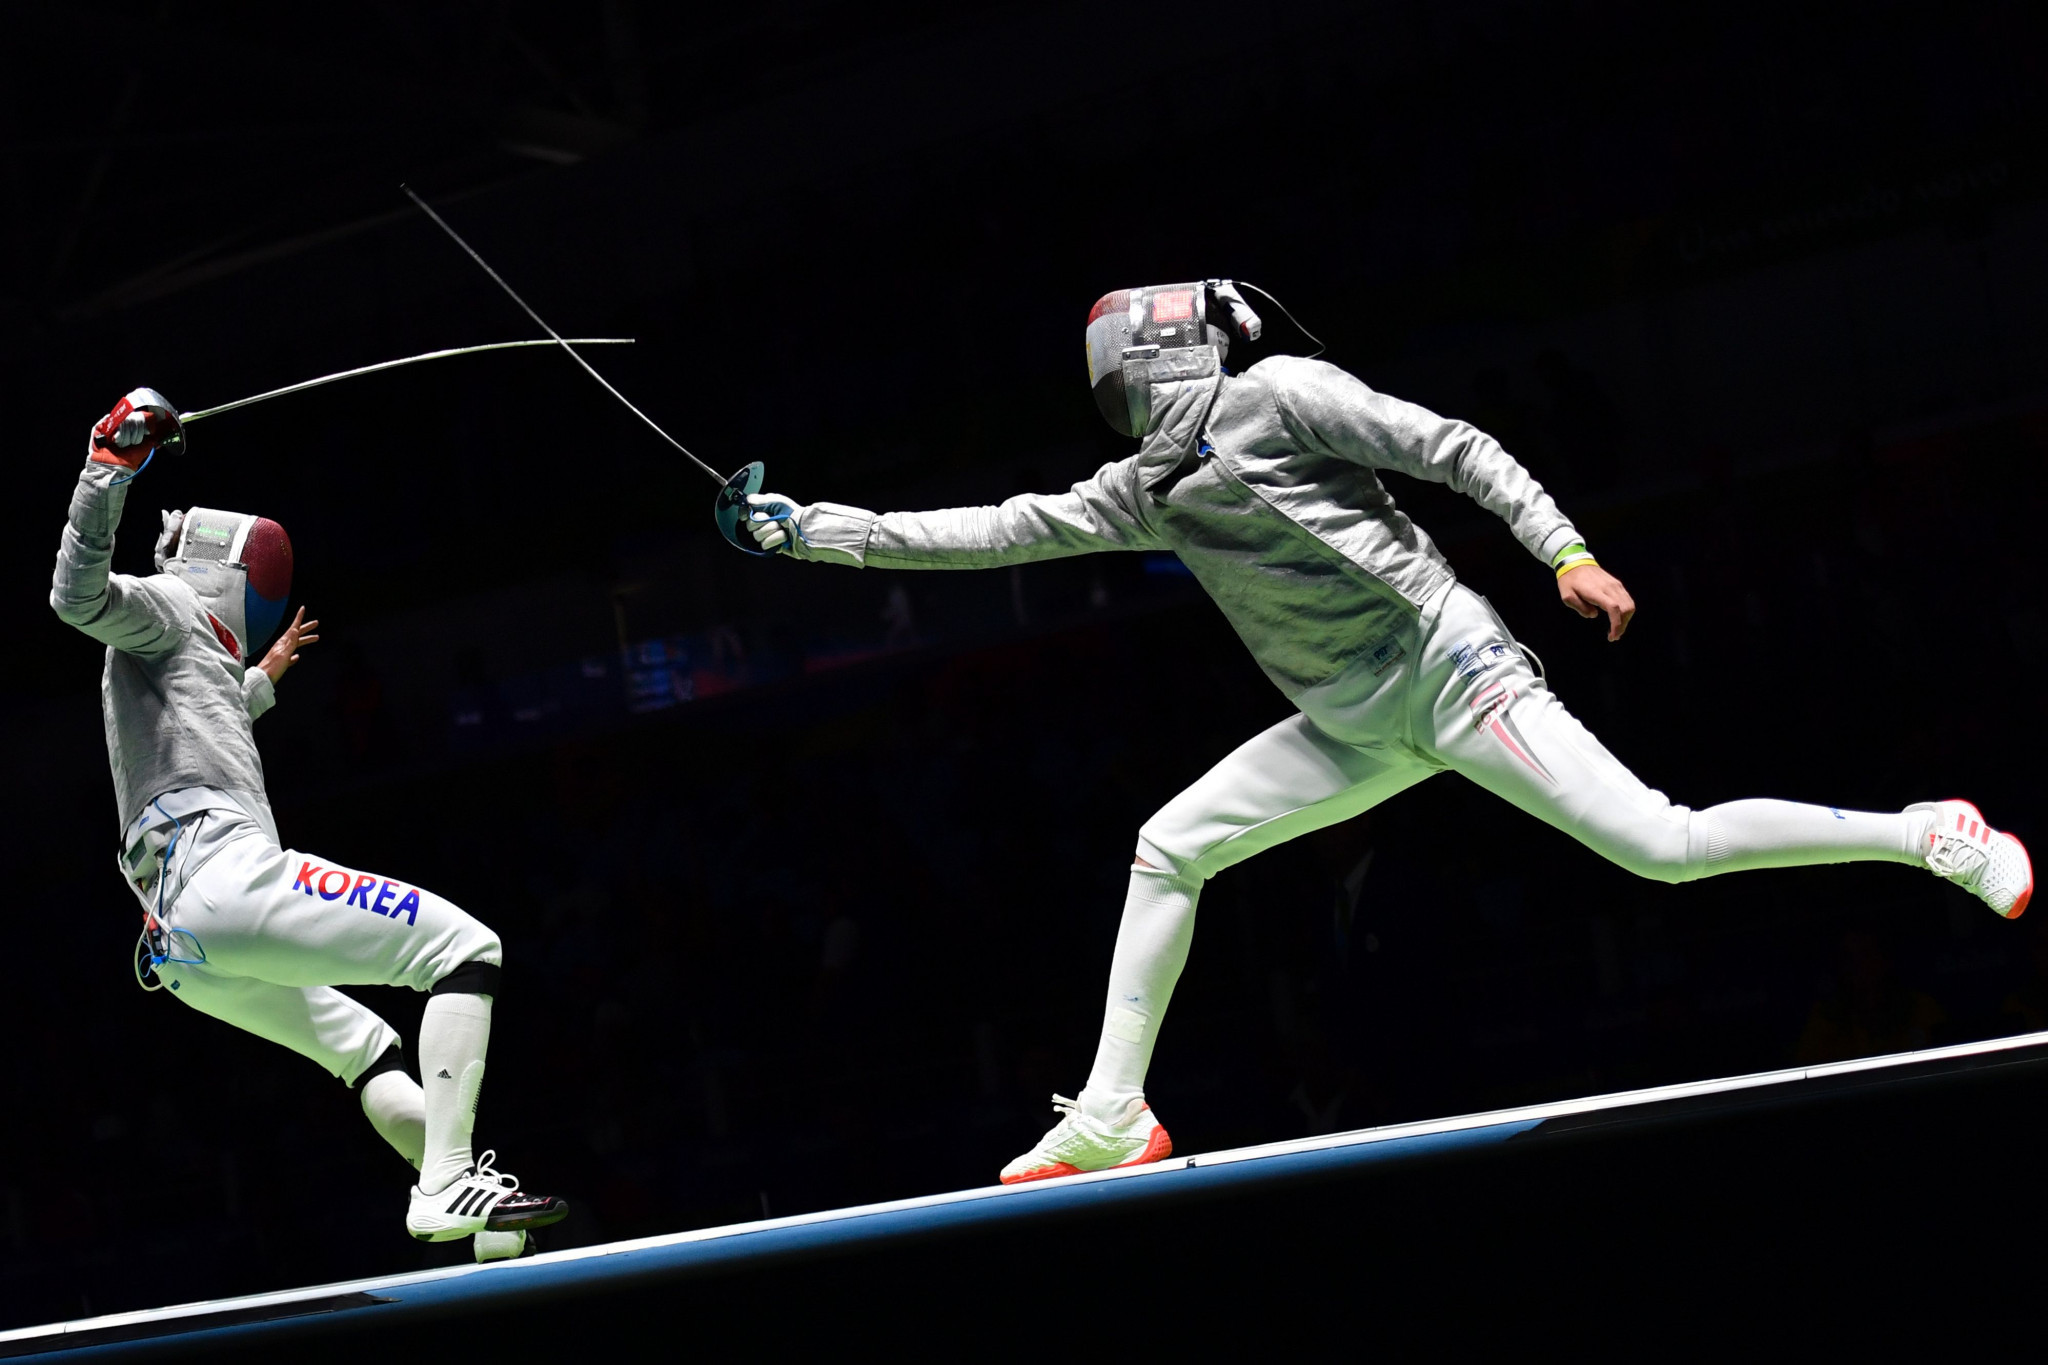 Egypt's Mohamed Amer came out on top in the men's sabre event ©Getty Images